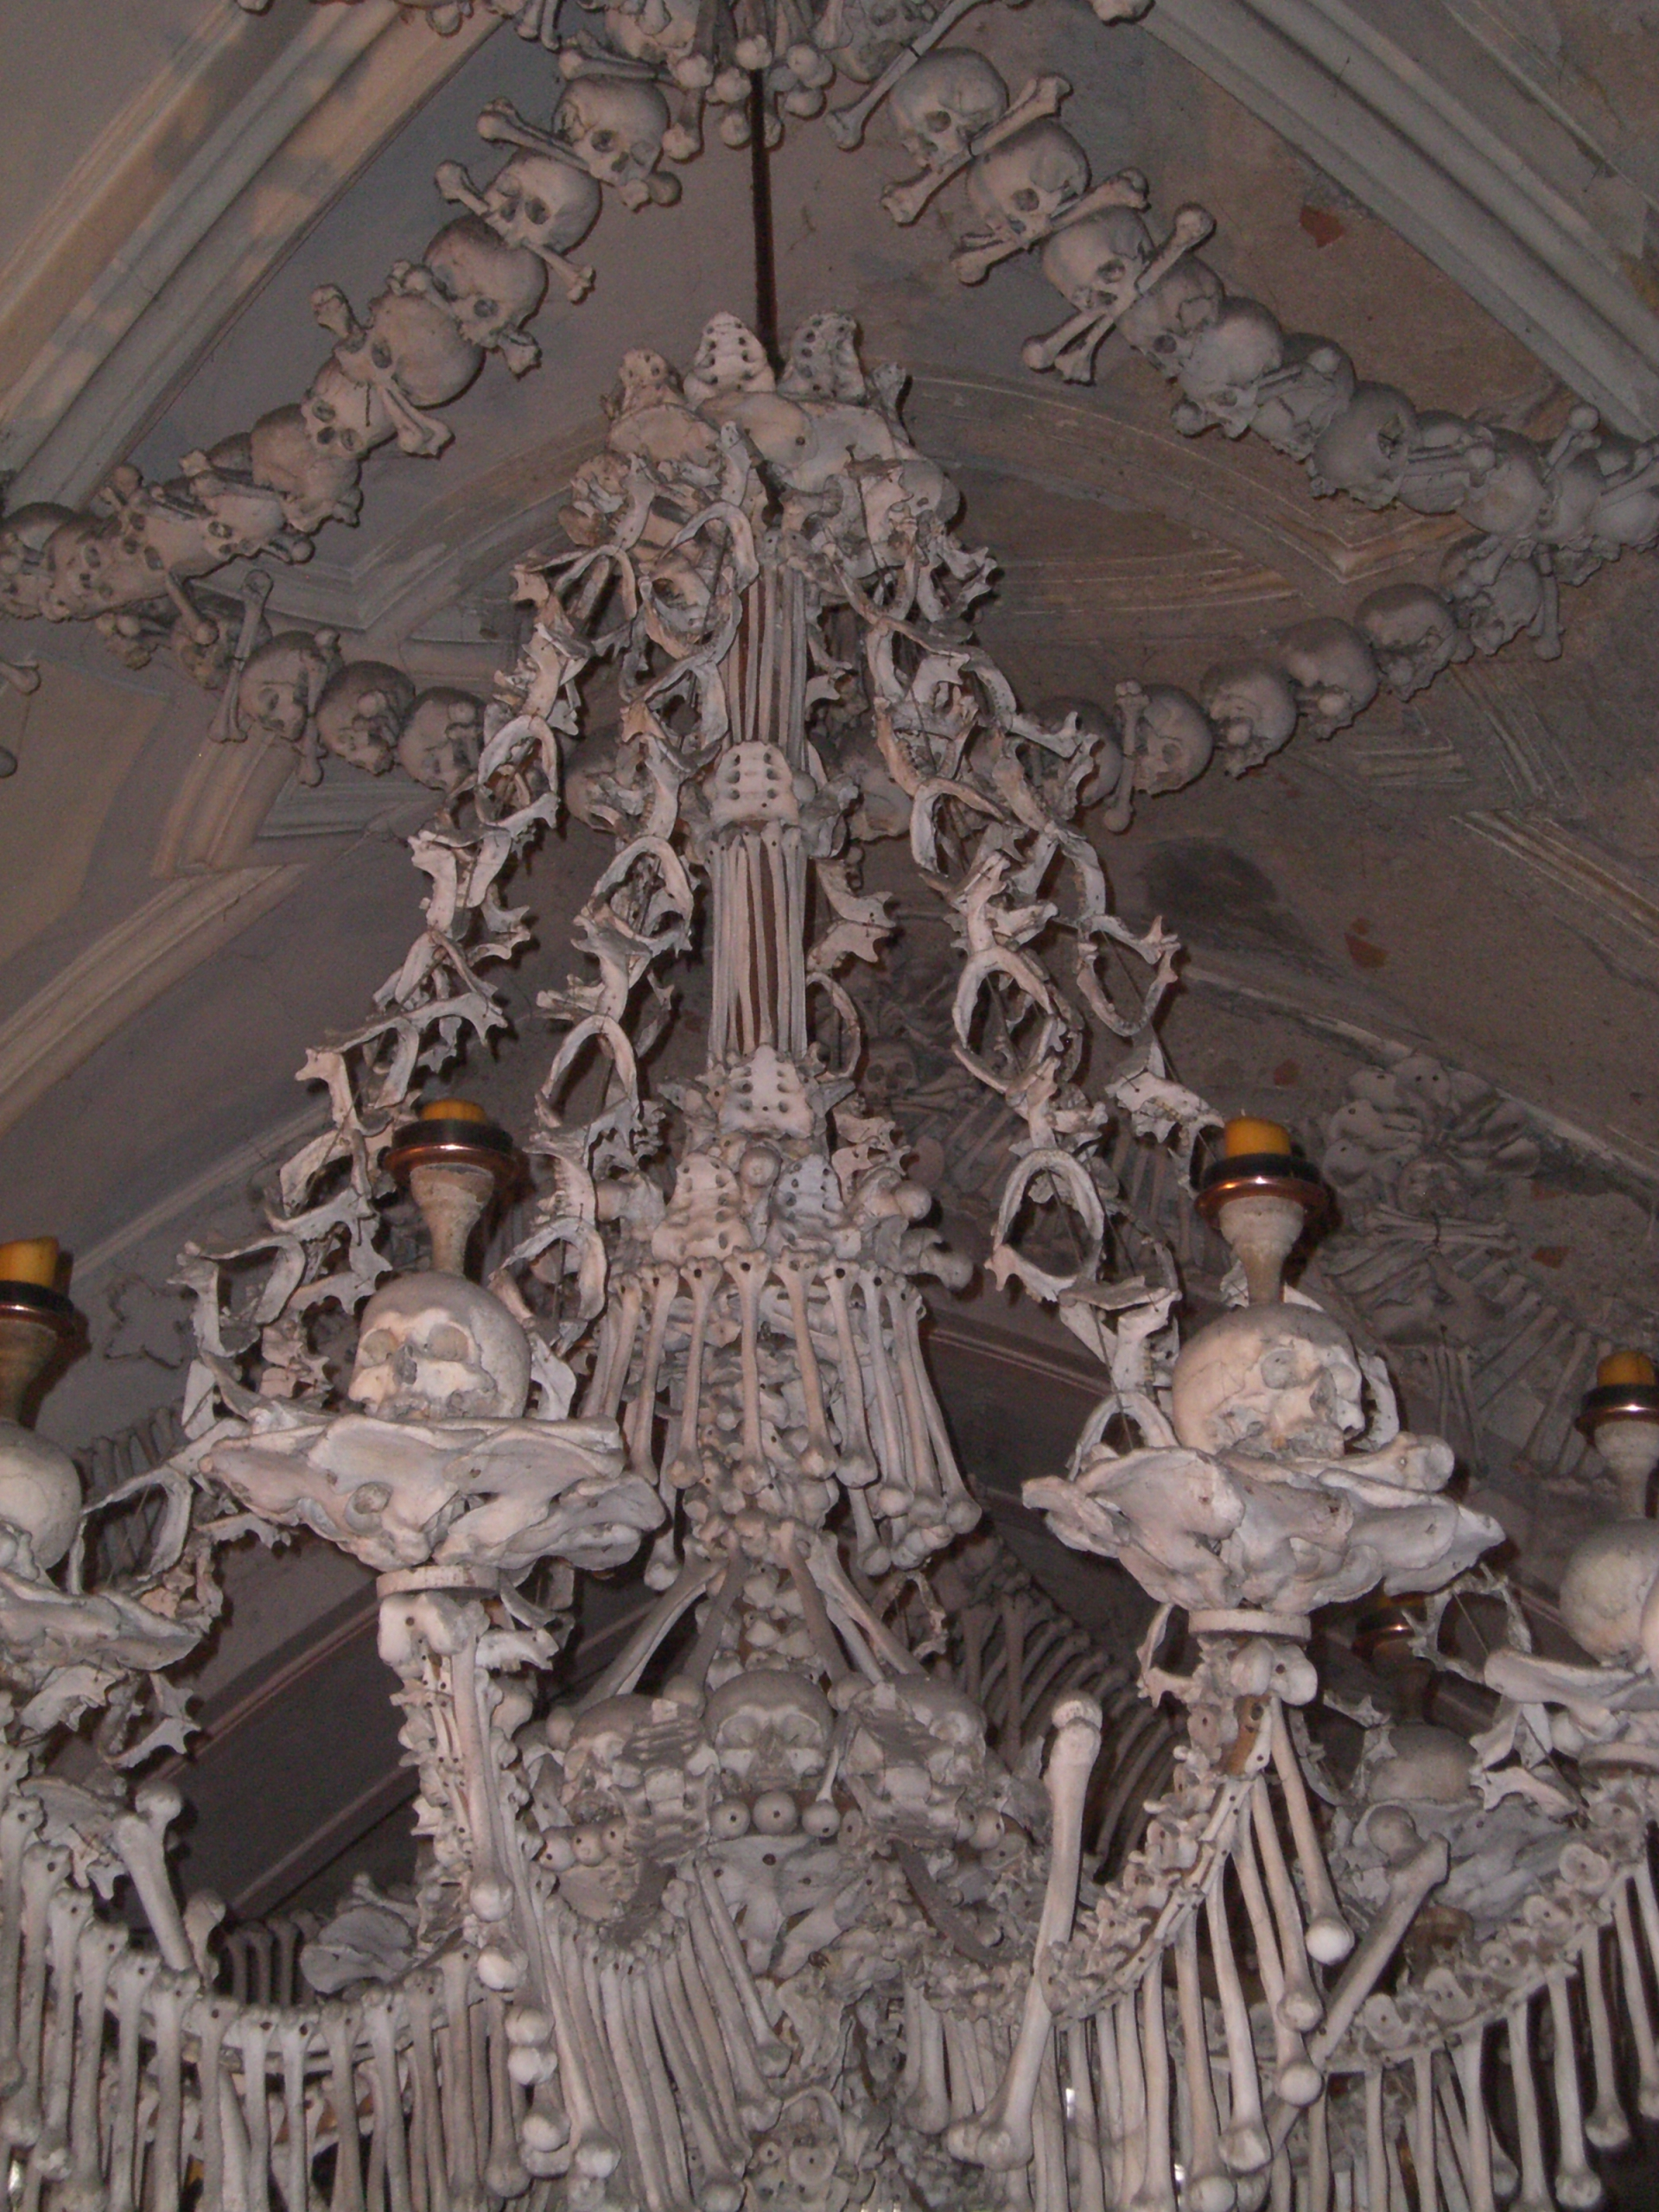 Church of all saints sedlec 8 wowexcursions bone chandelier at sedlec ossuary in czech republic aloadofball Image collections